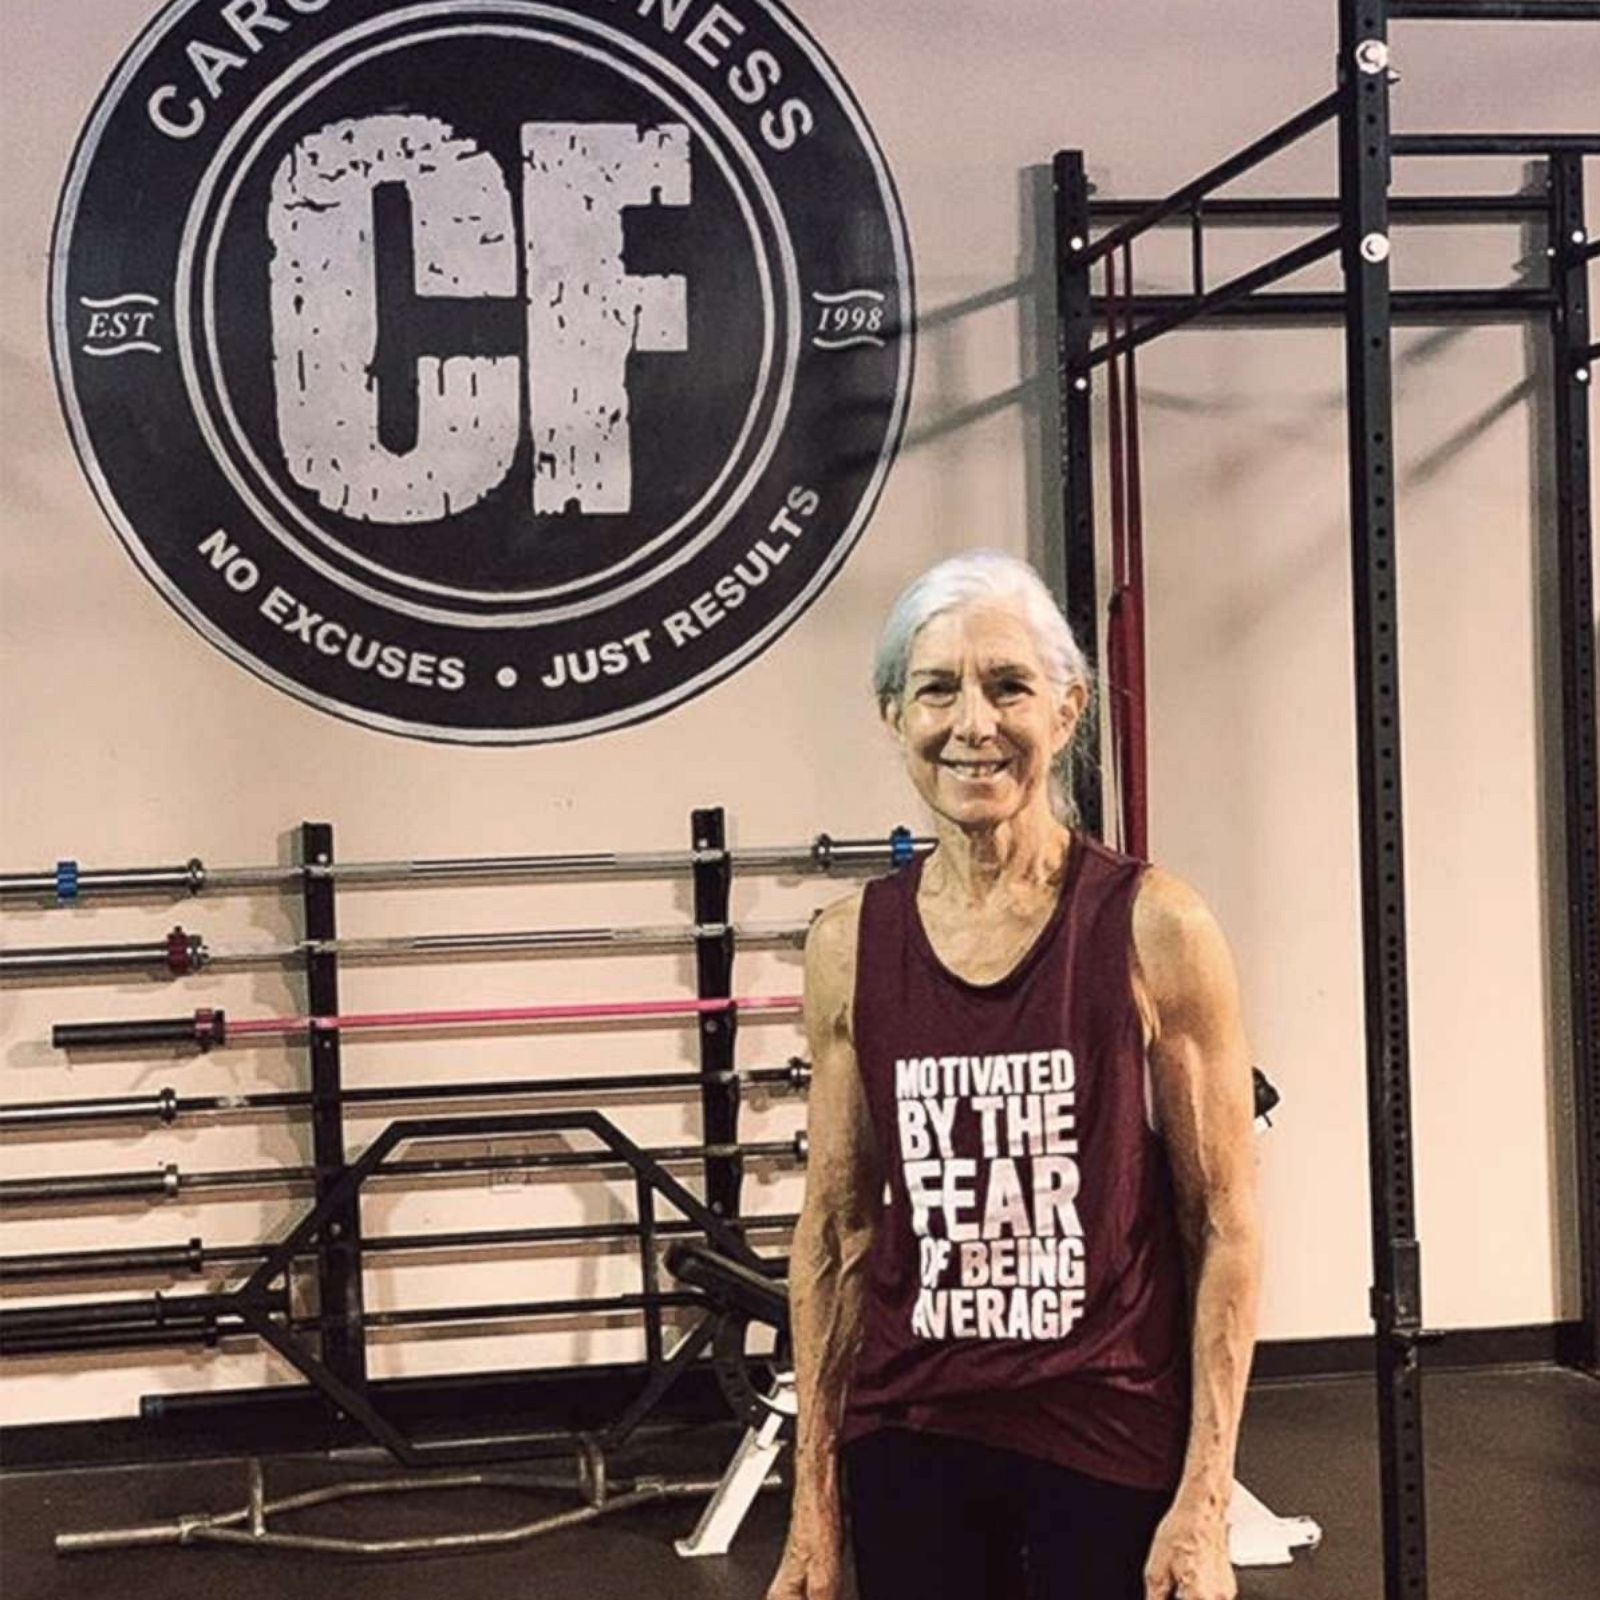 72-year-old woman who does CrossFit daily is serious #workoutgoals | GMA